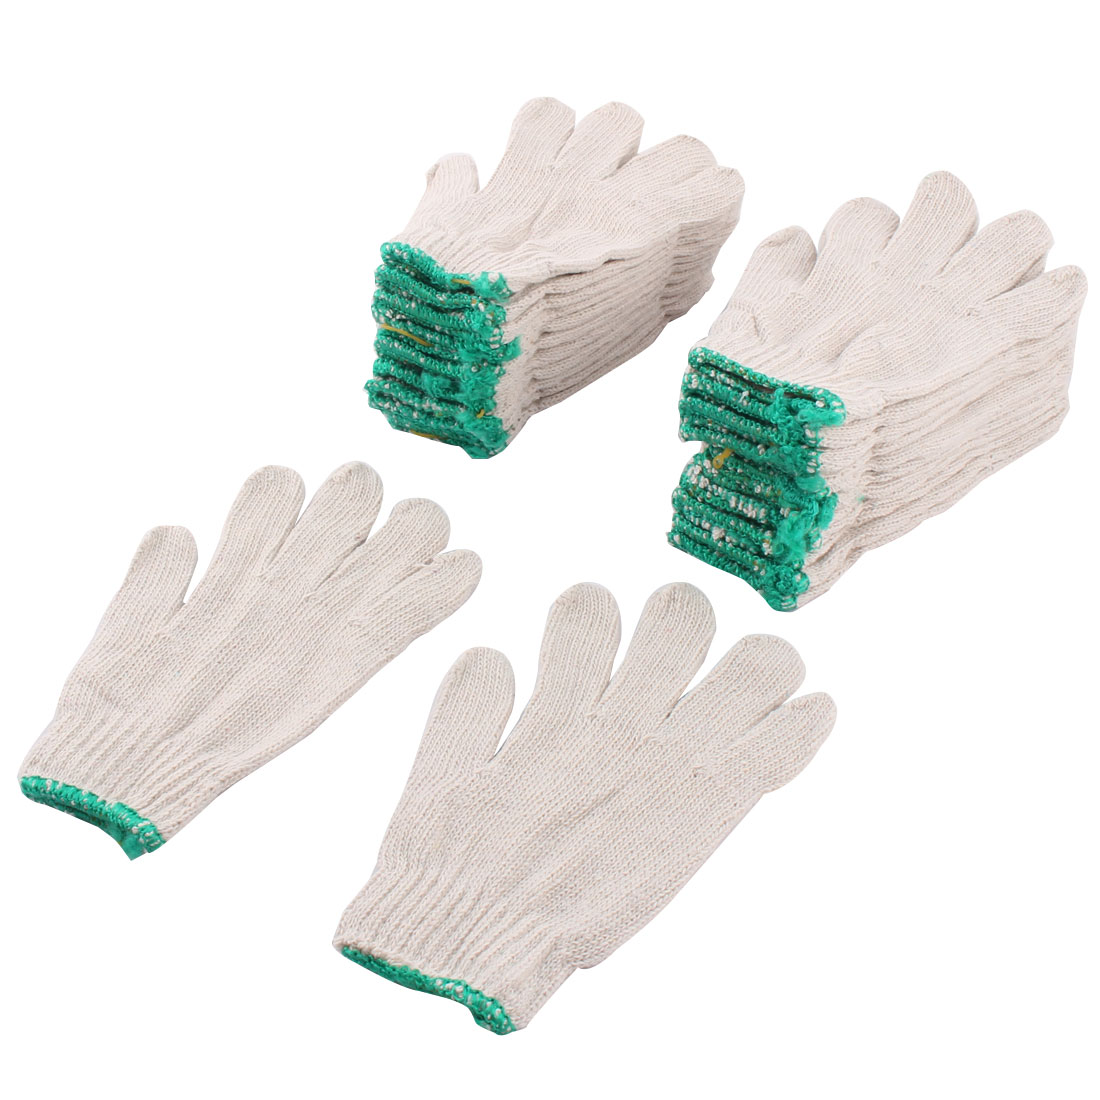 12 Pair Knitting Industry Construction Work Working Hand